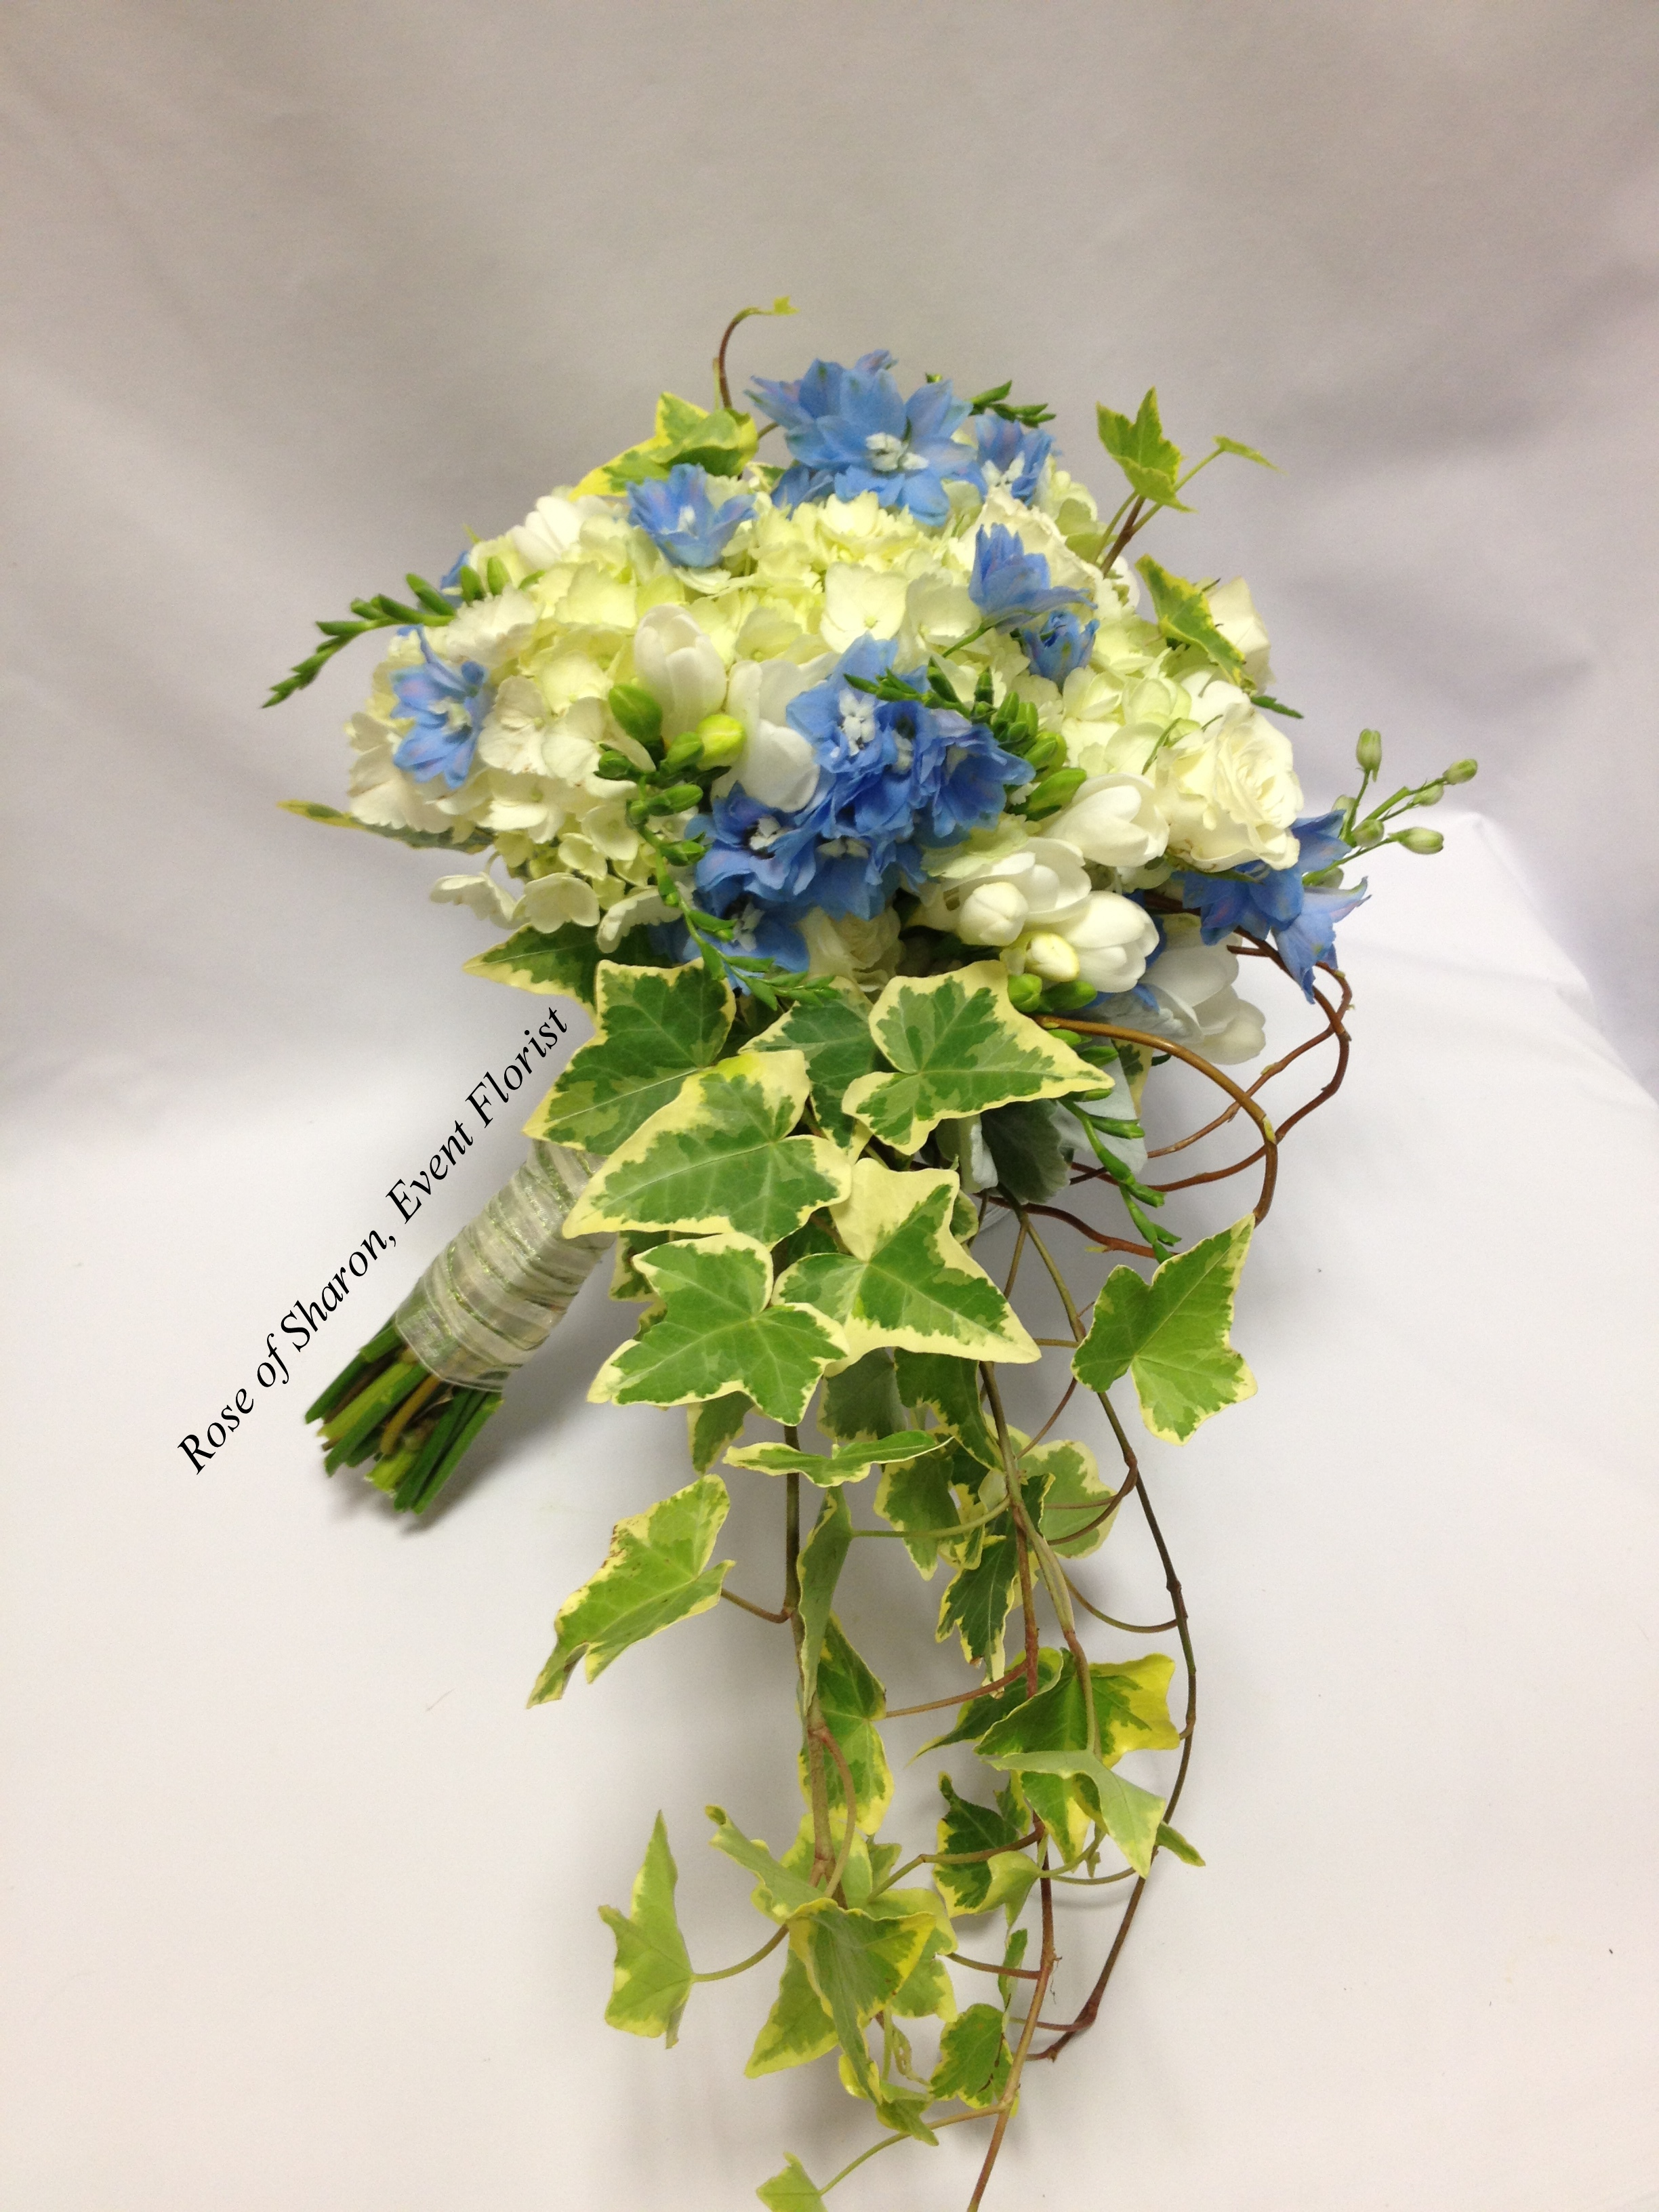 Blue and Cream Cascading Bouquet with Hydrangeas, Delphinium and Ivy. Rose of Sharon Floral Designs